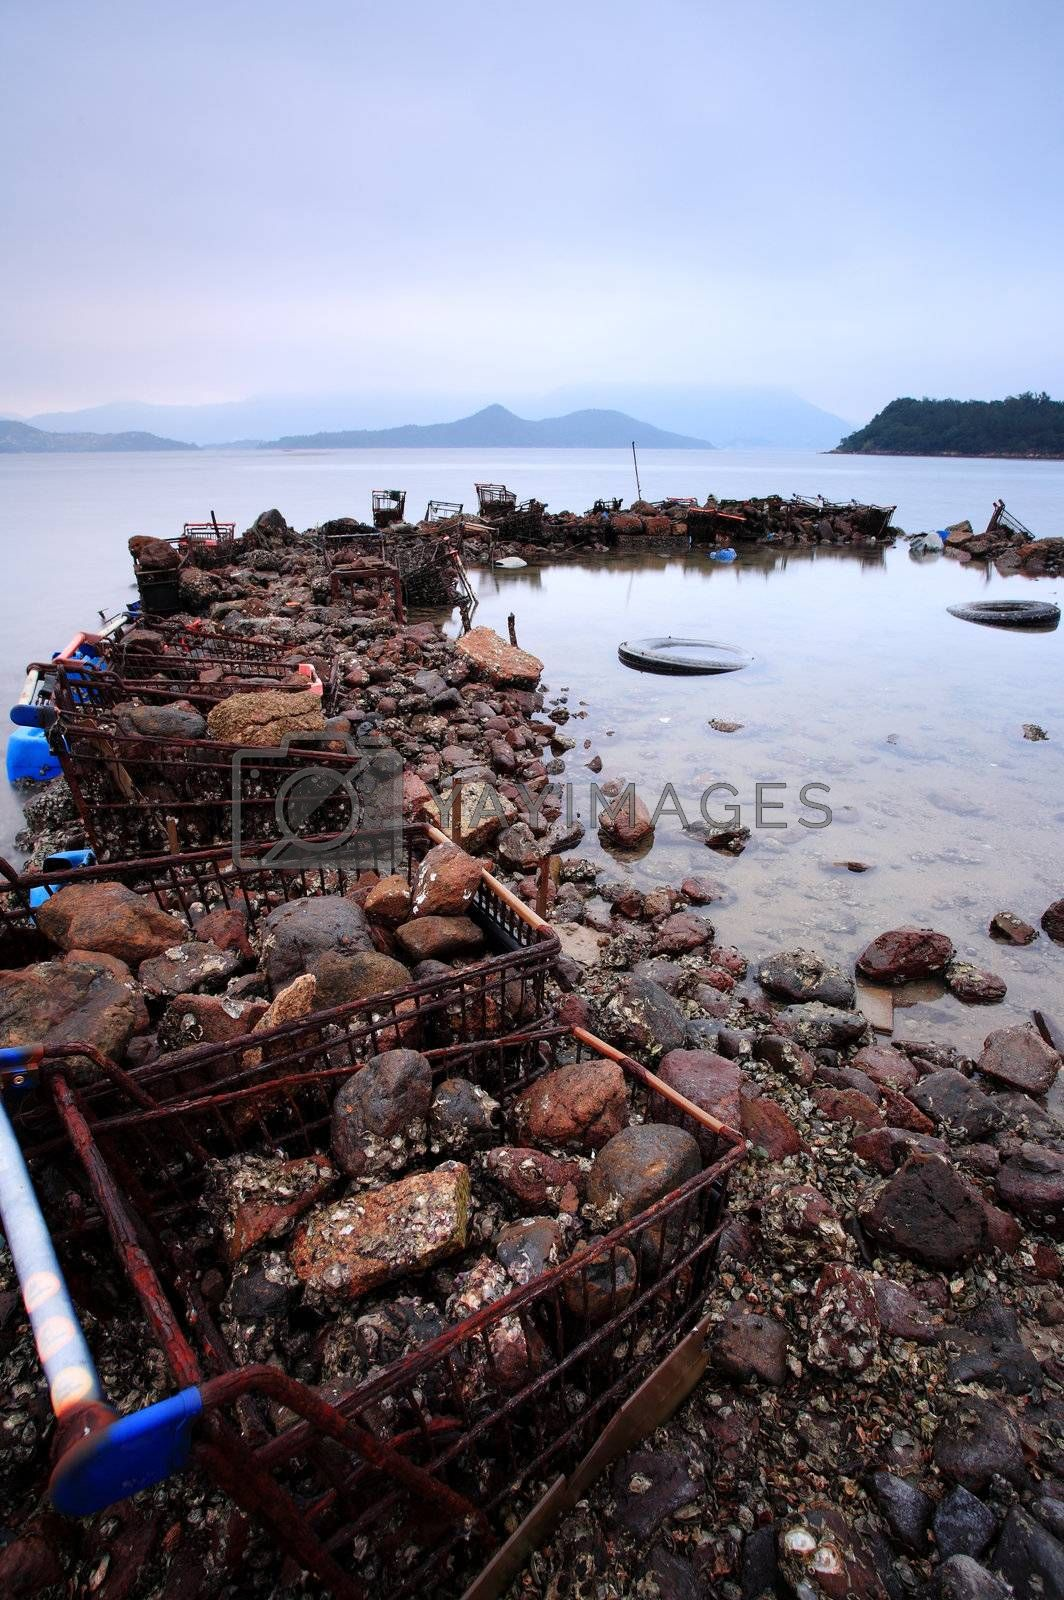 wasted stuffs at the coastline by leungchopan